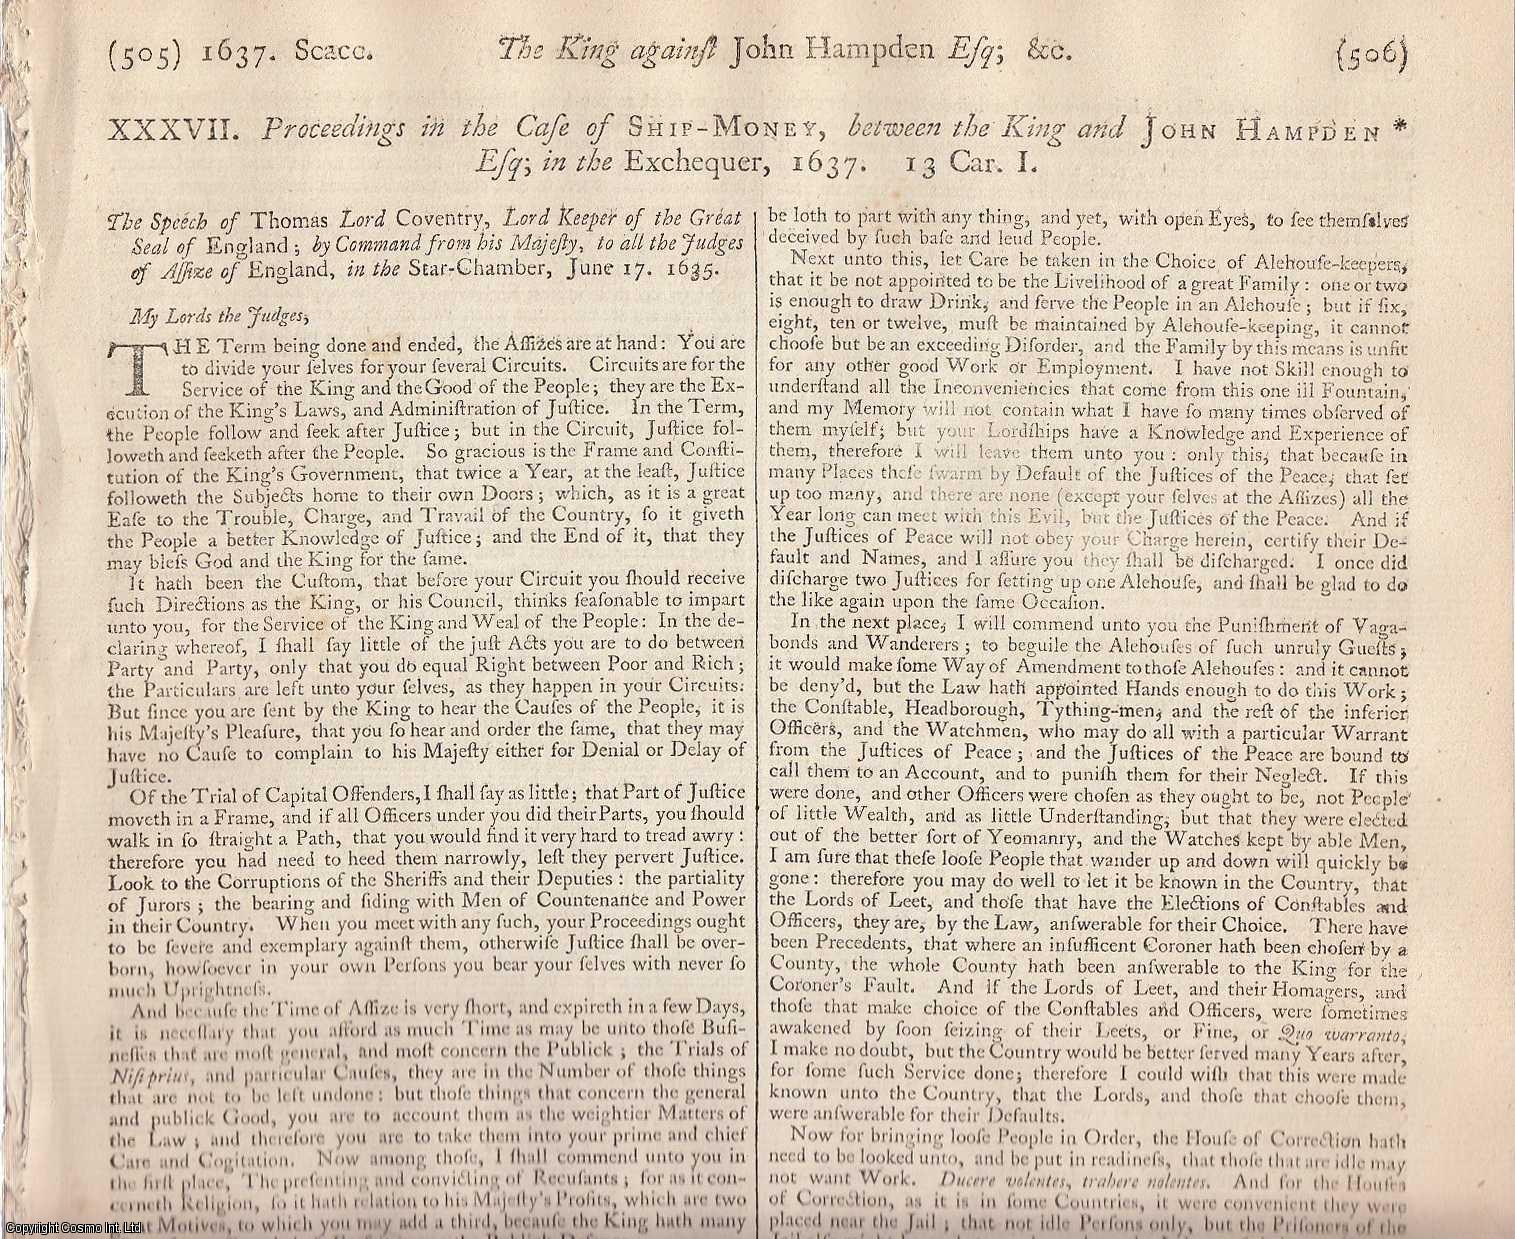 SHIP MONEY TAX. Proceedings in the Case of Ship Money between the King and John Hampden Esq, 1637., [Trial].